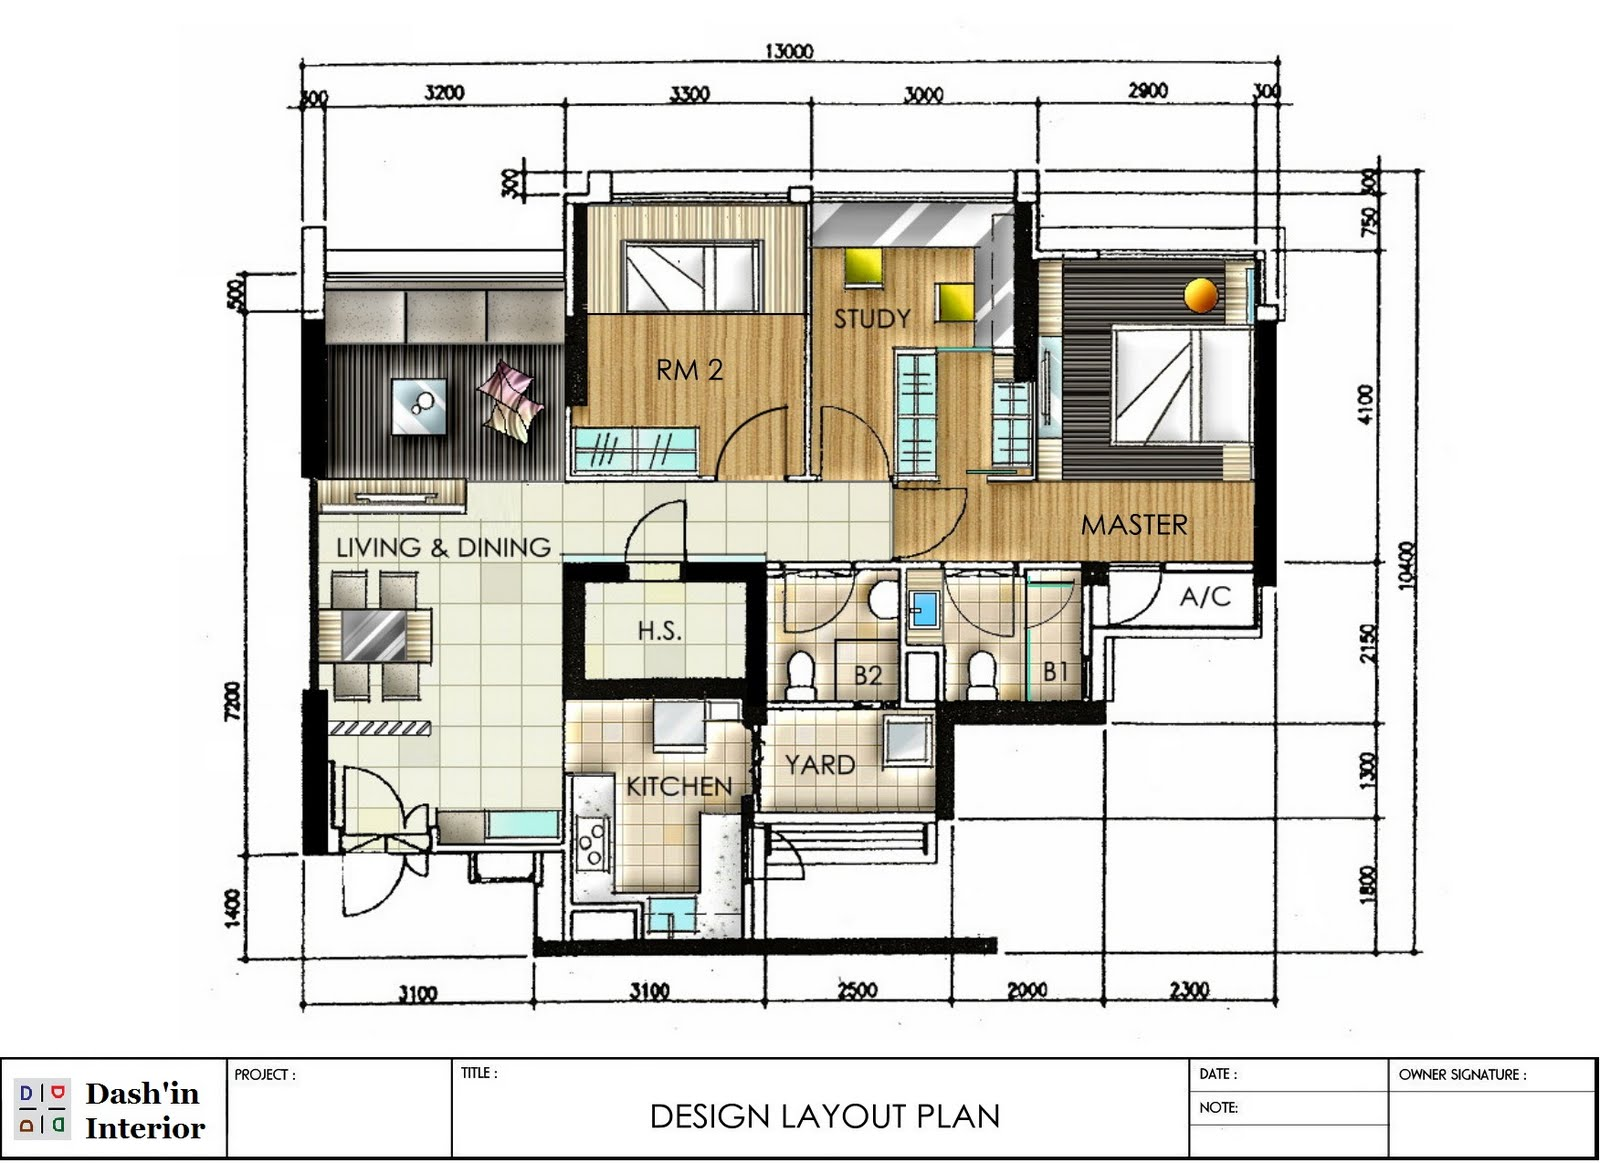 Dash 39 in interior hand drawn designs floor plan layout Floor plan layout tool